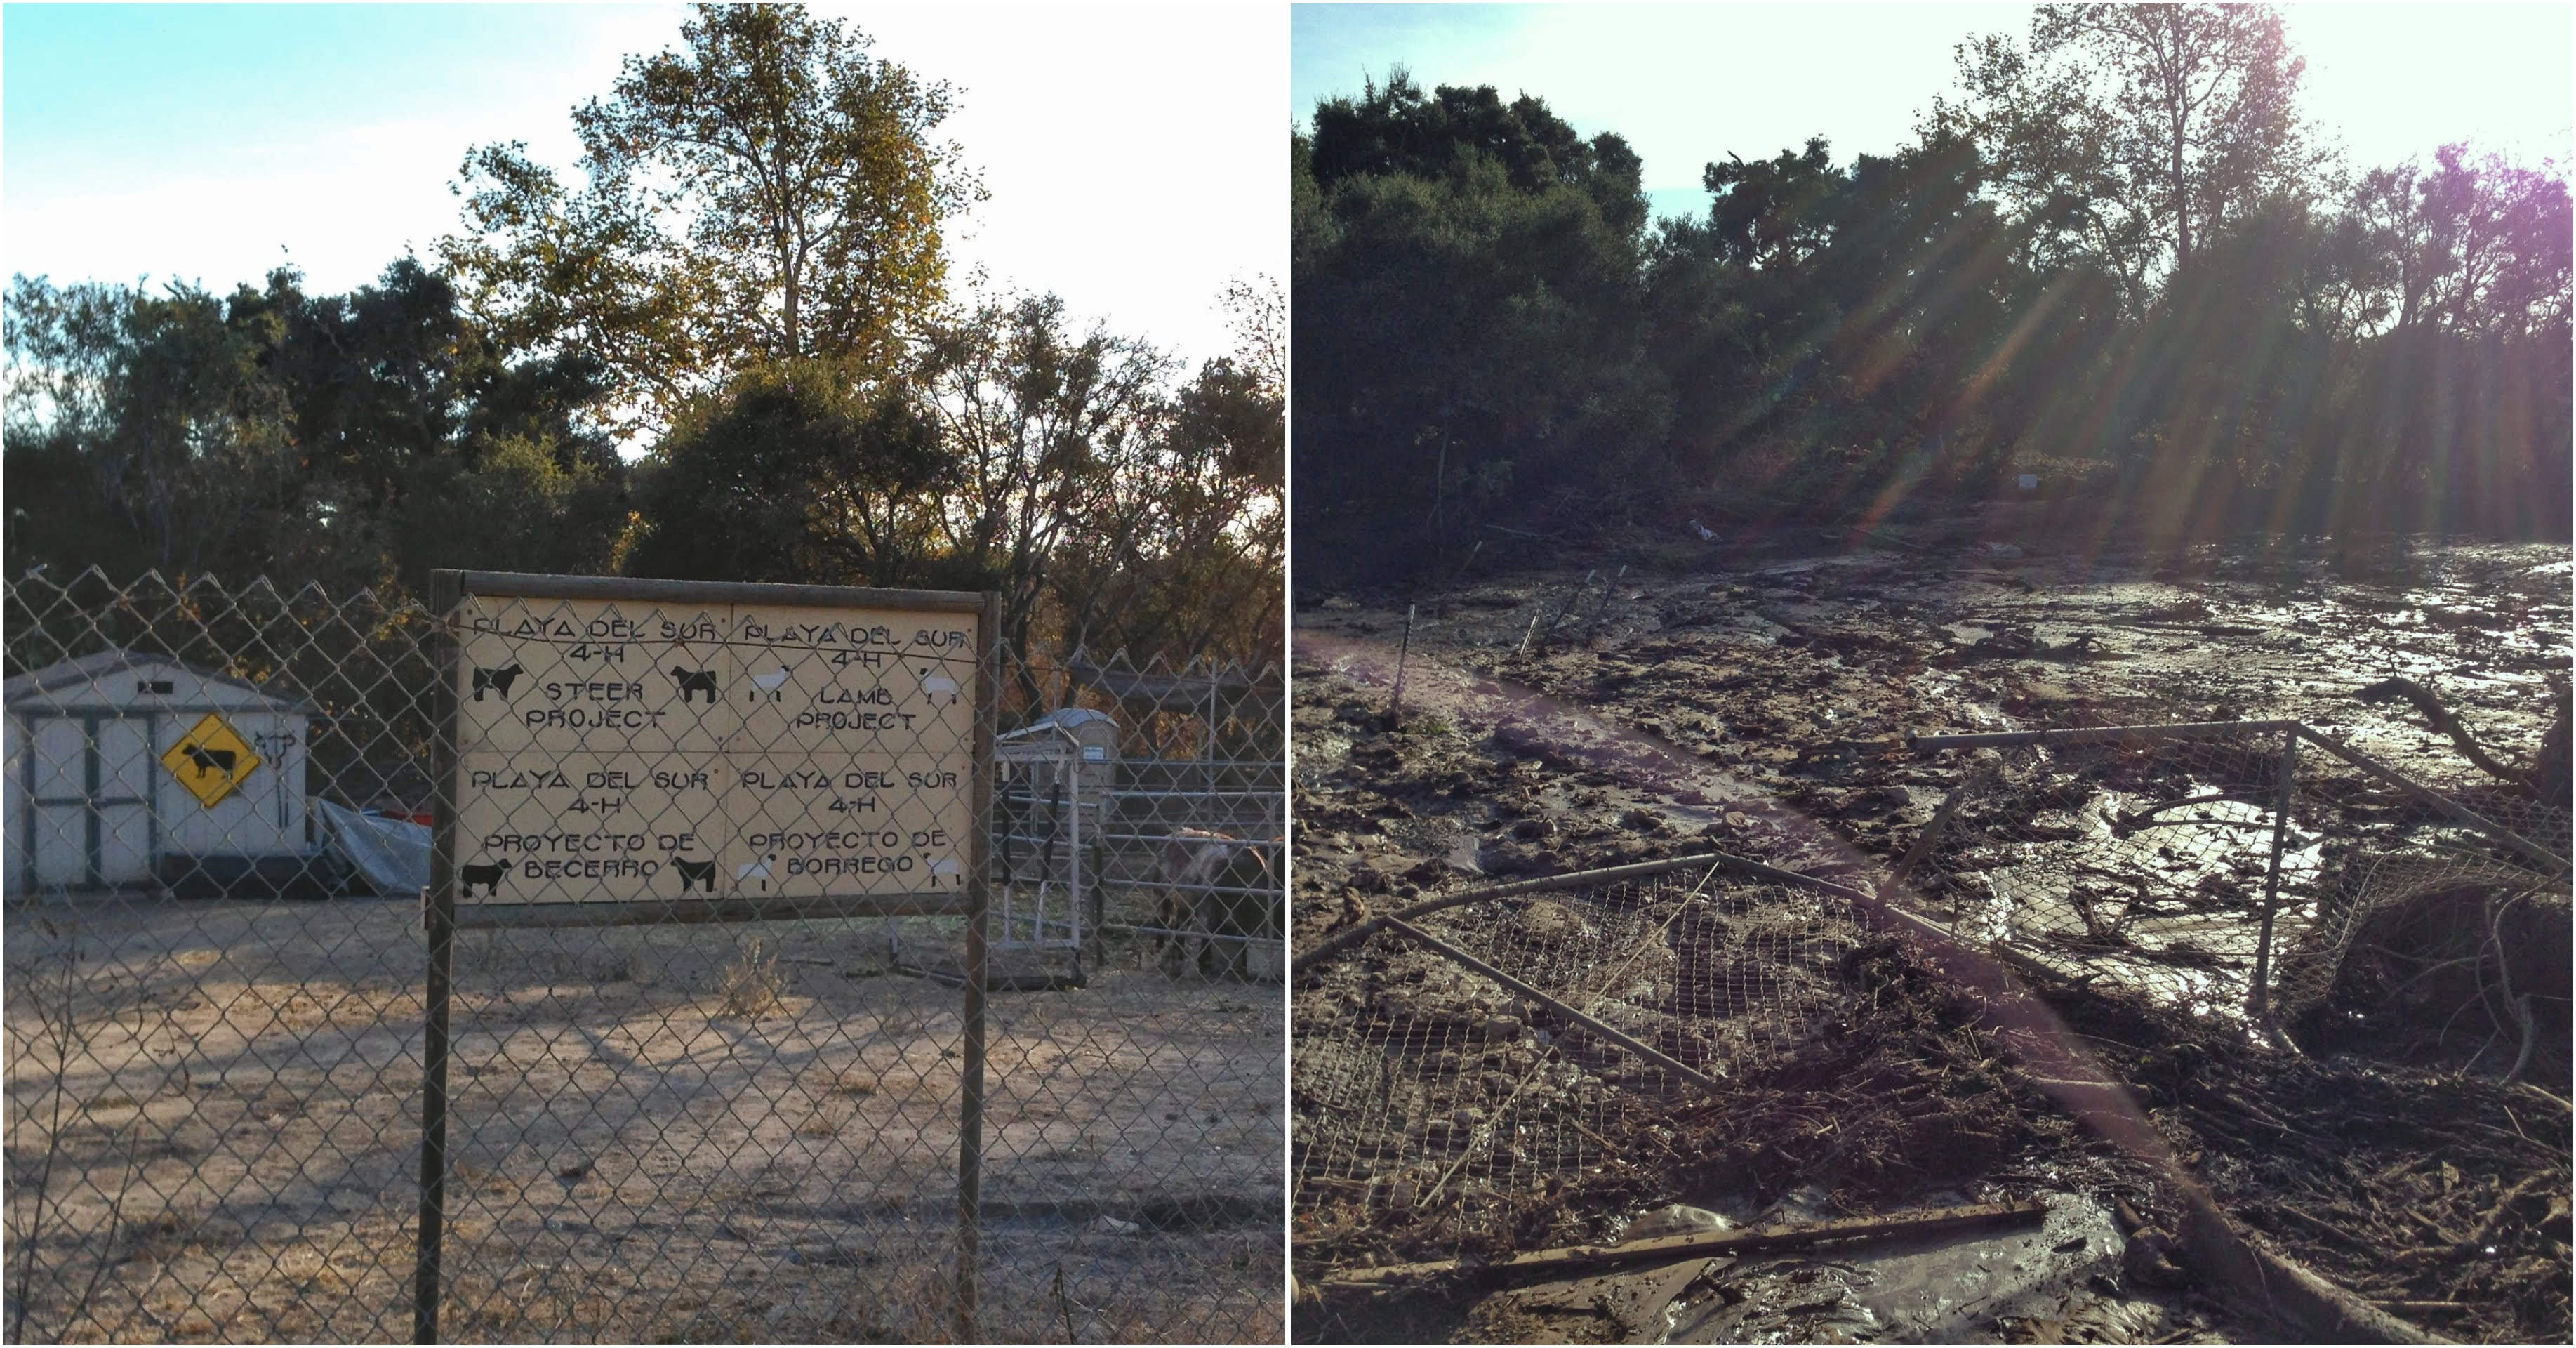 These side-by-side photos show the devastation caused by recent mudslides in Carpinteria.